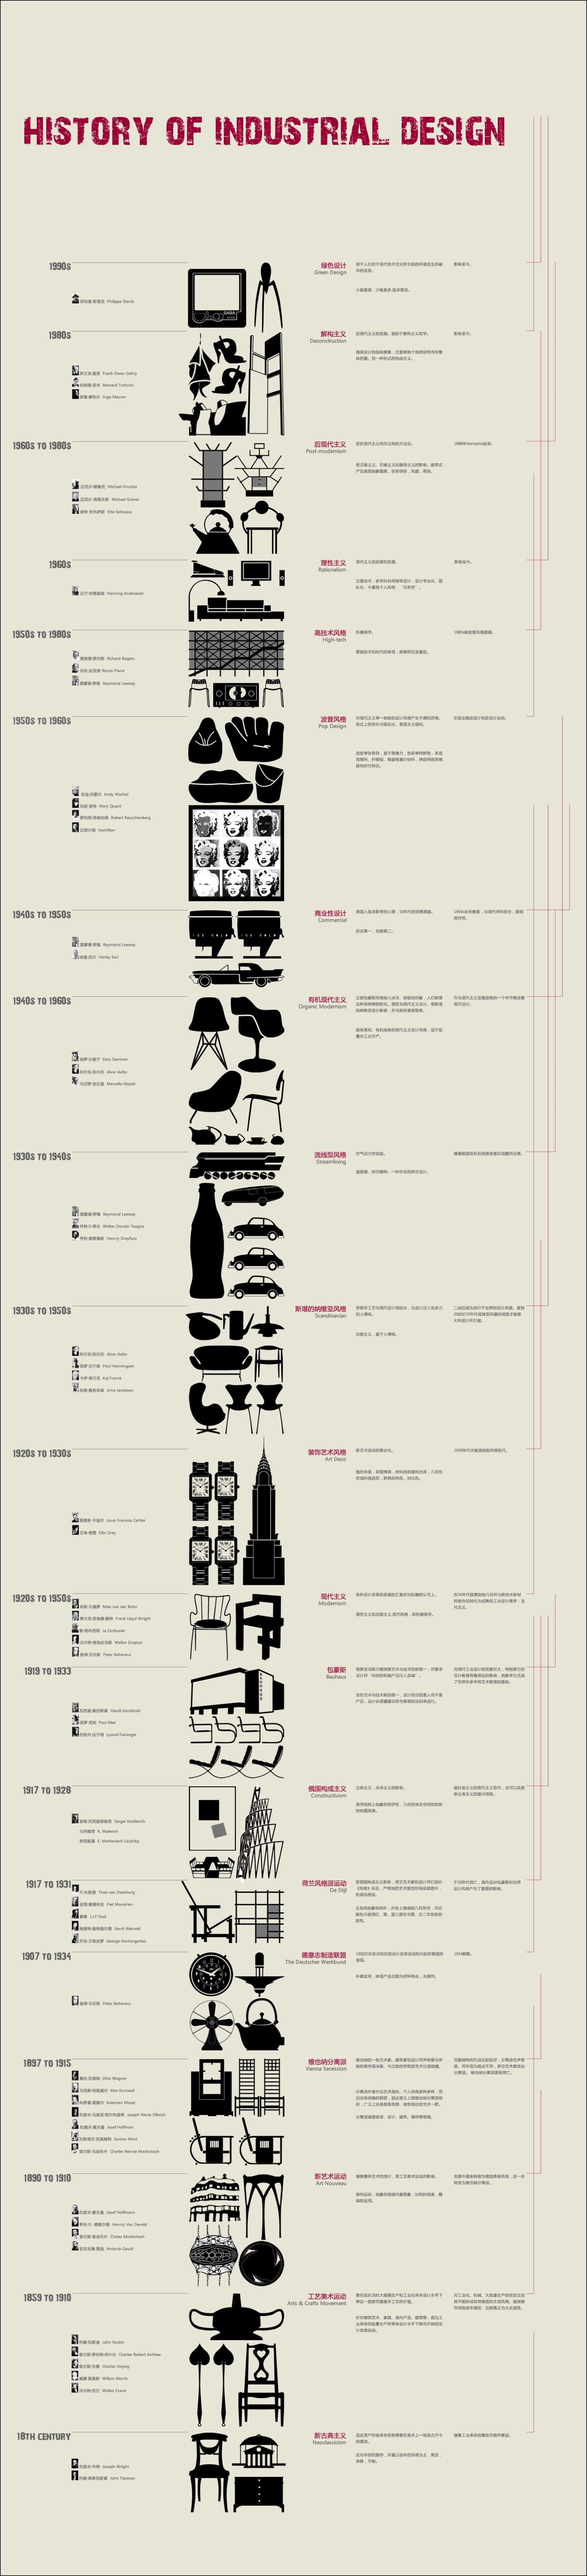 Pin By Elad Shitrit On Informationvisualization History Design Timeline Design Design Theory